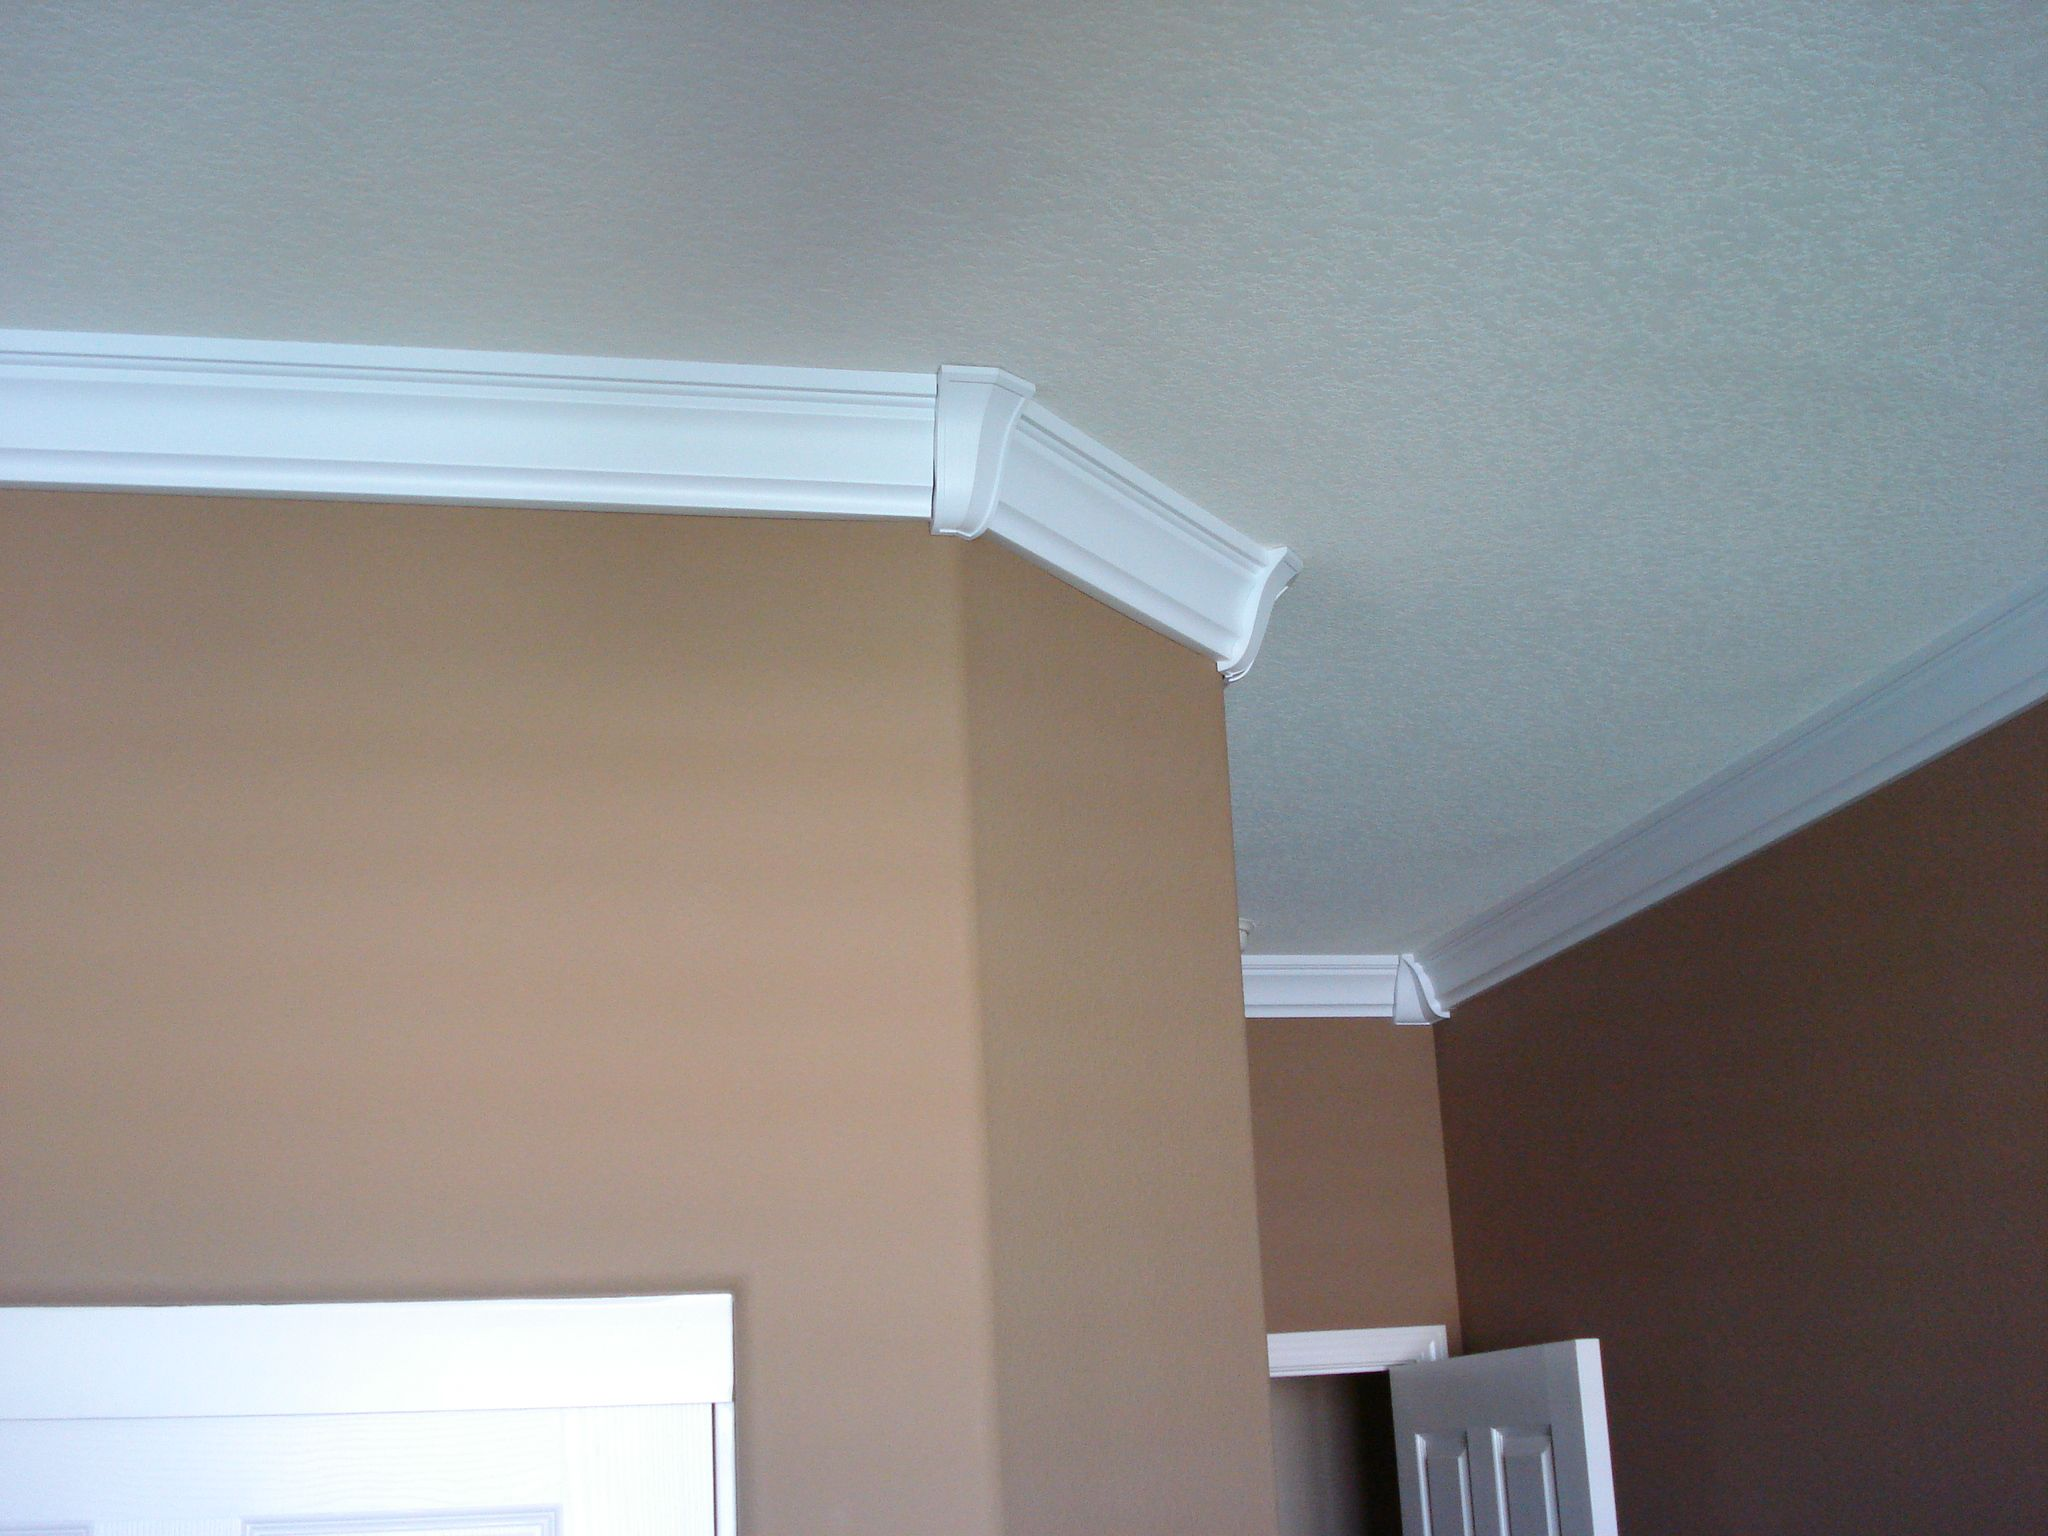 Another angle of the completed installation. www.rowlcrown.com ...